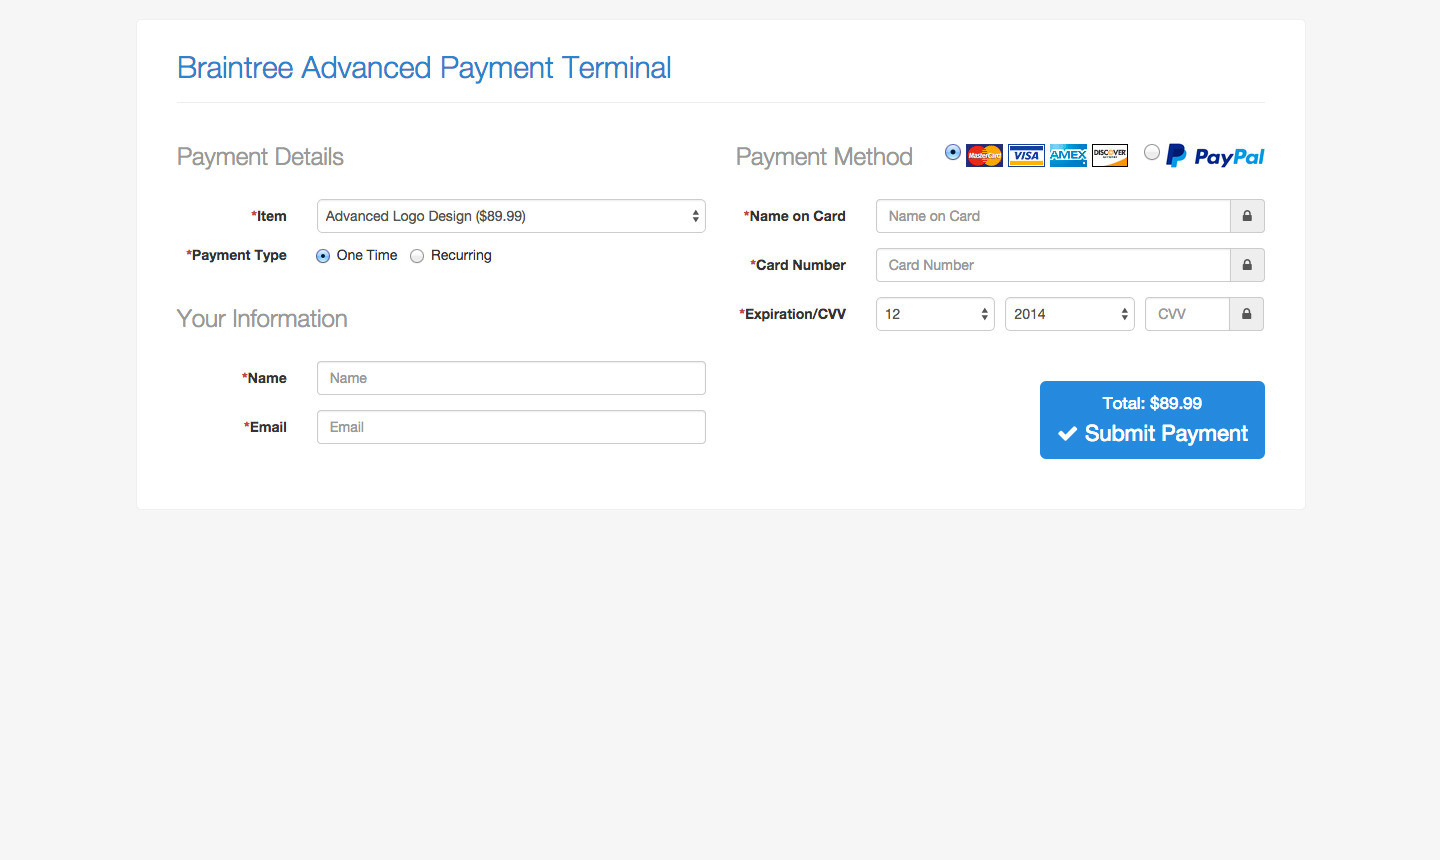 braintree advanced payment terminal by devinlewis codecanyon screen shots 1 jpg